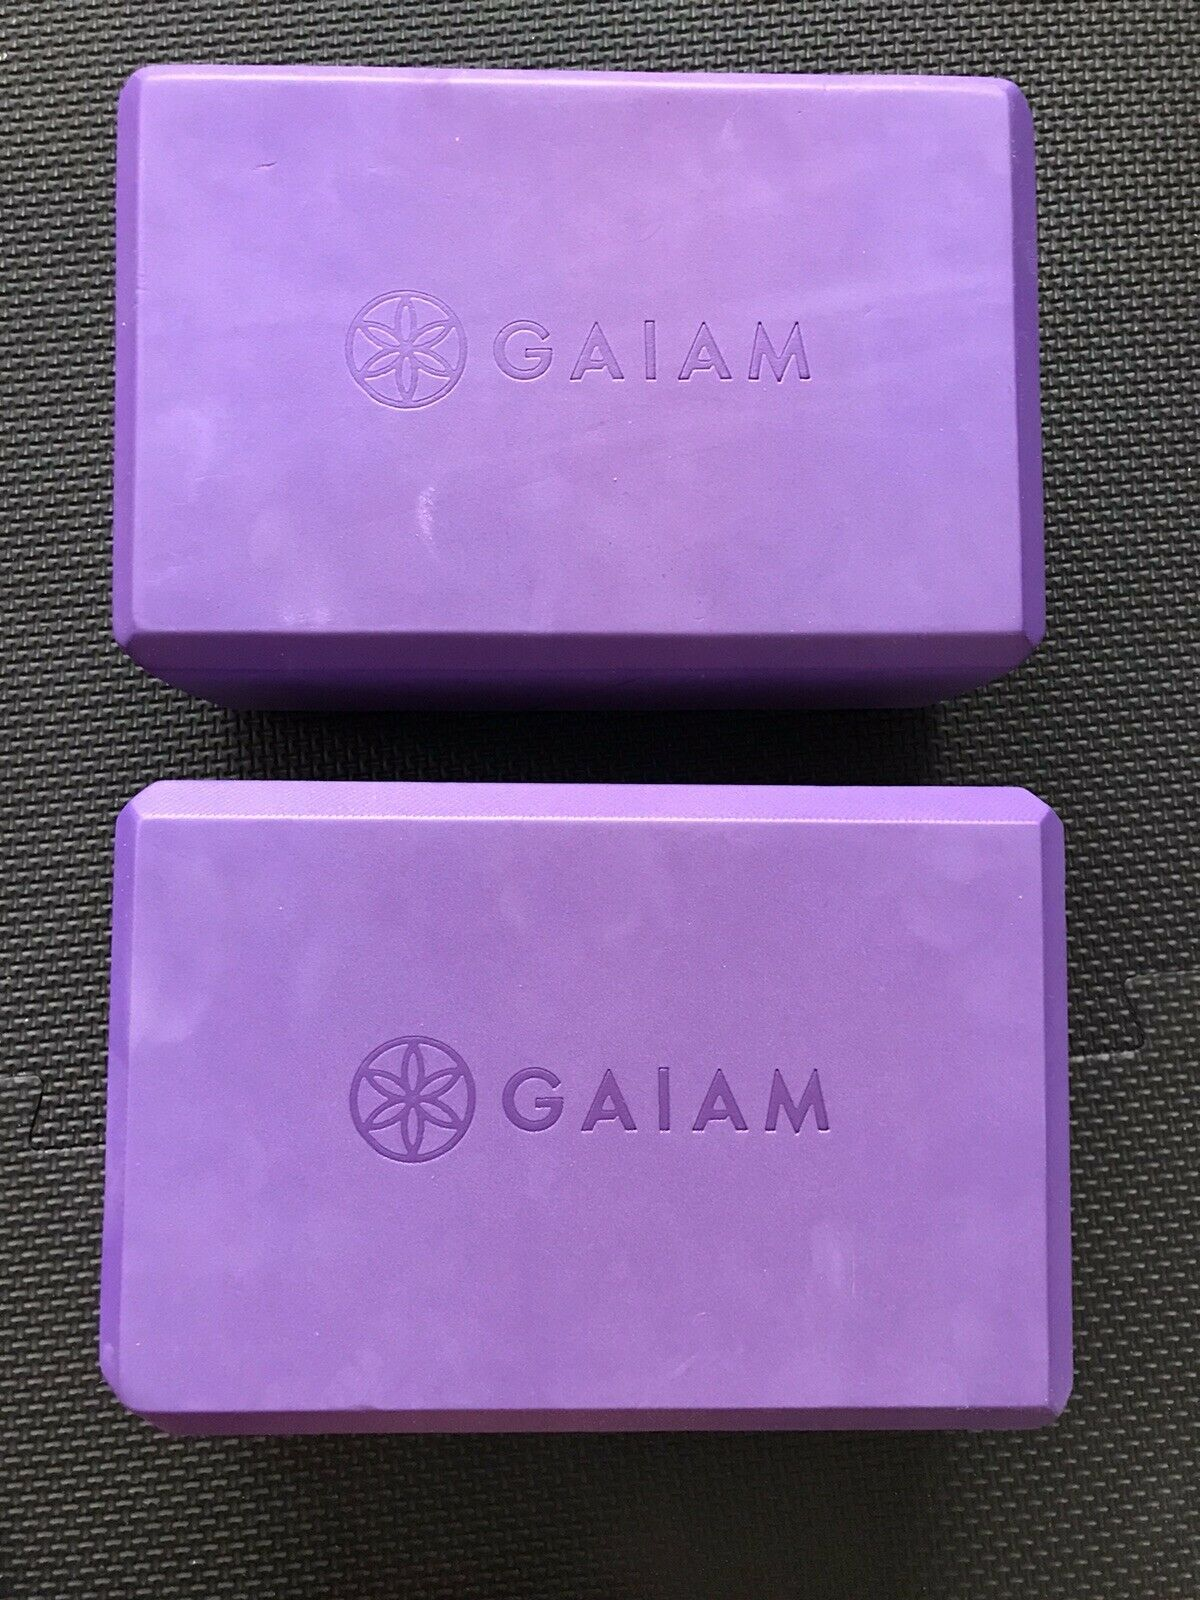 Gaiam Yoga Block 2 Pack Deep Purple Strap Not Included For Sale Online Ebay